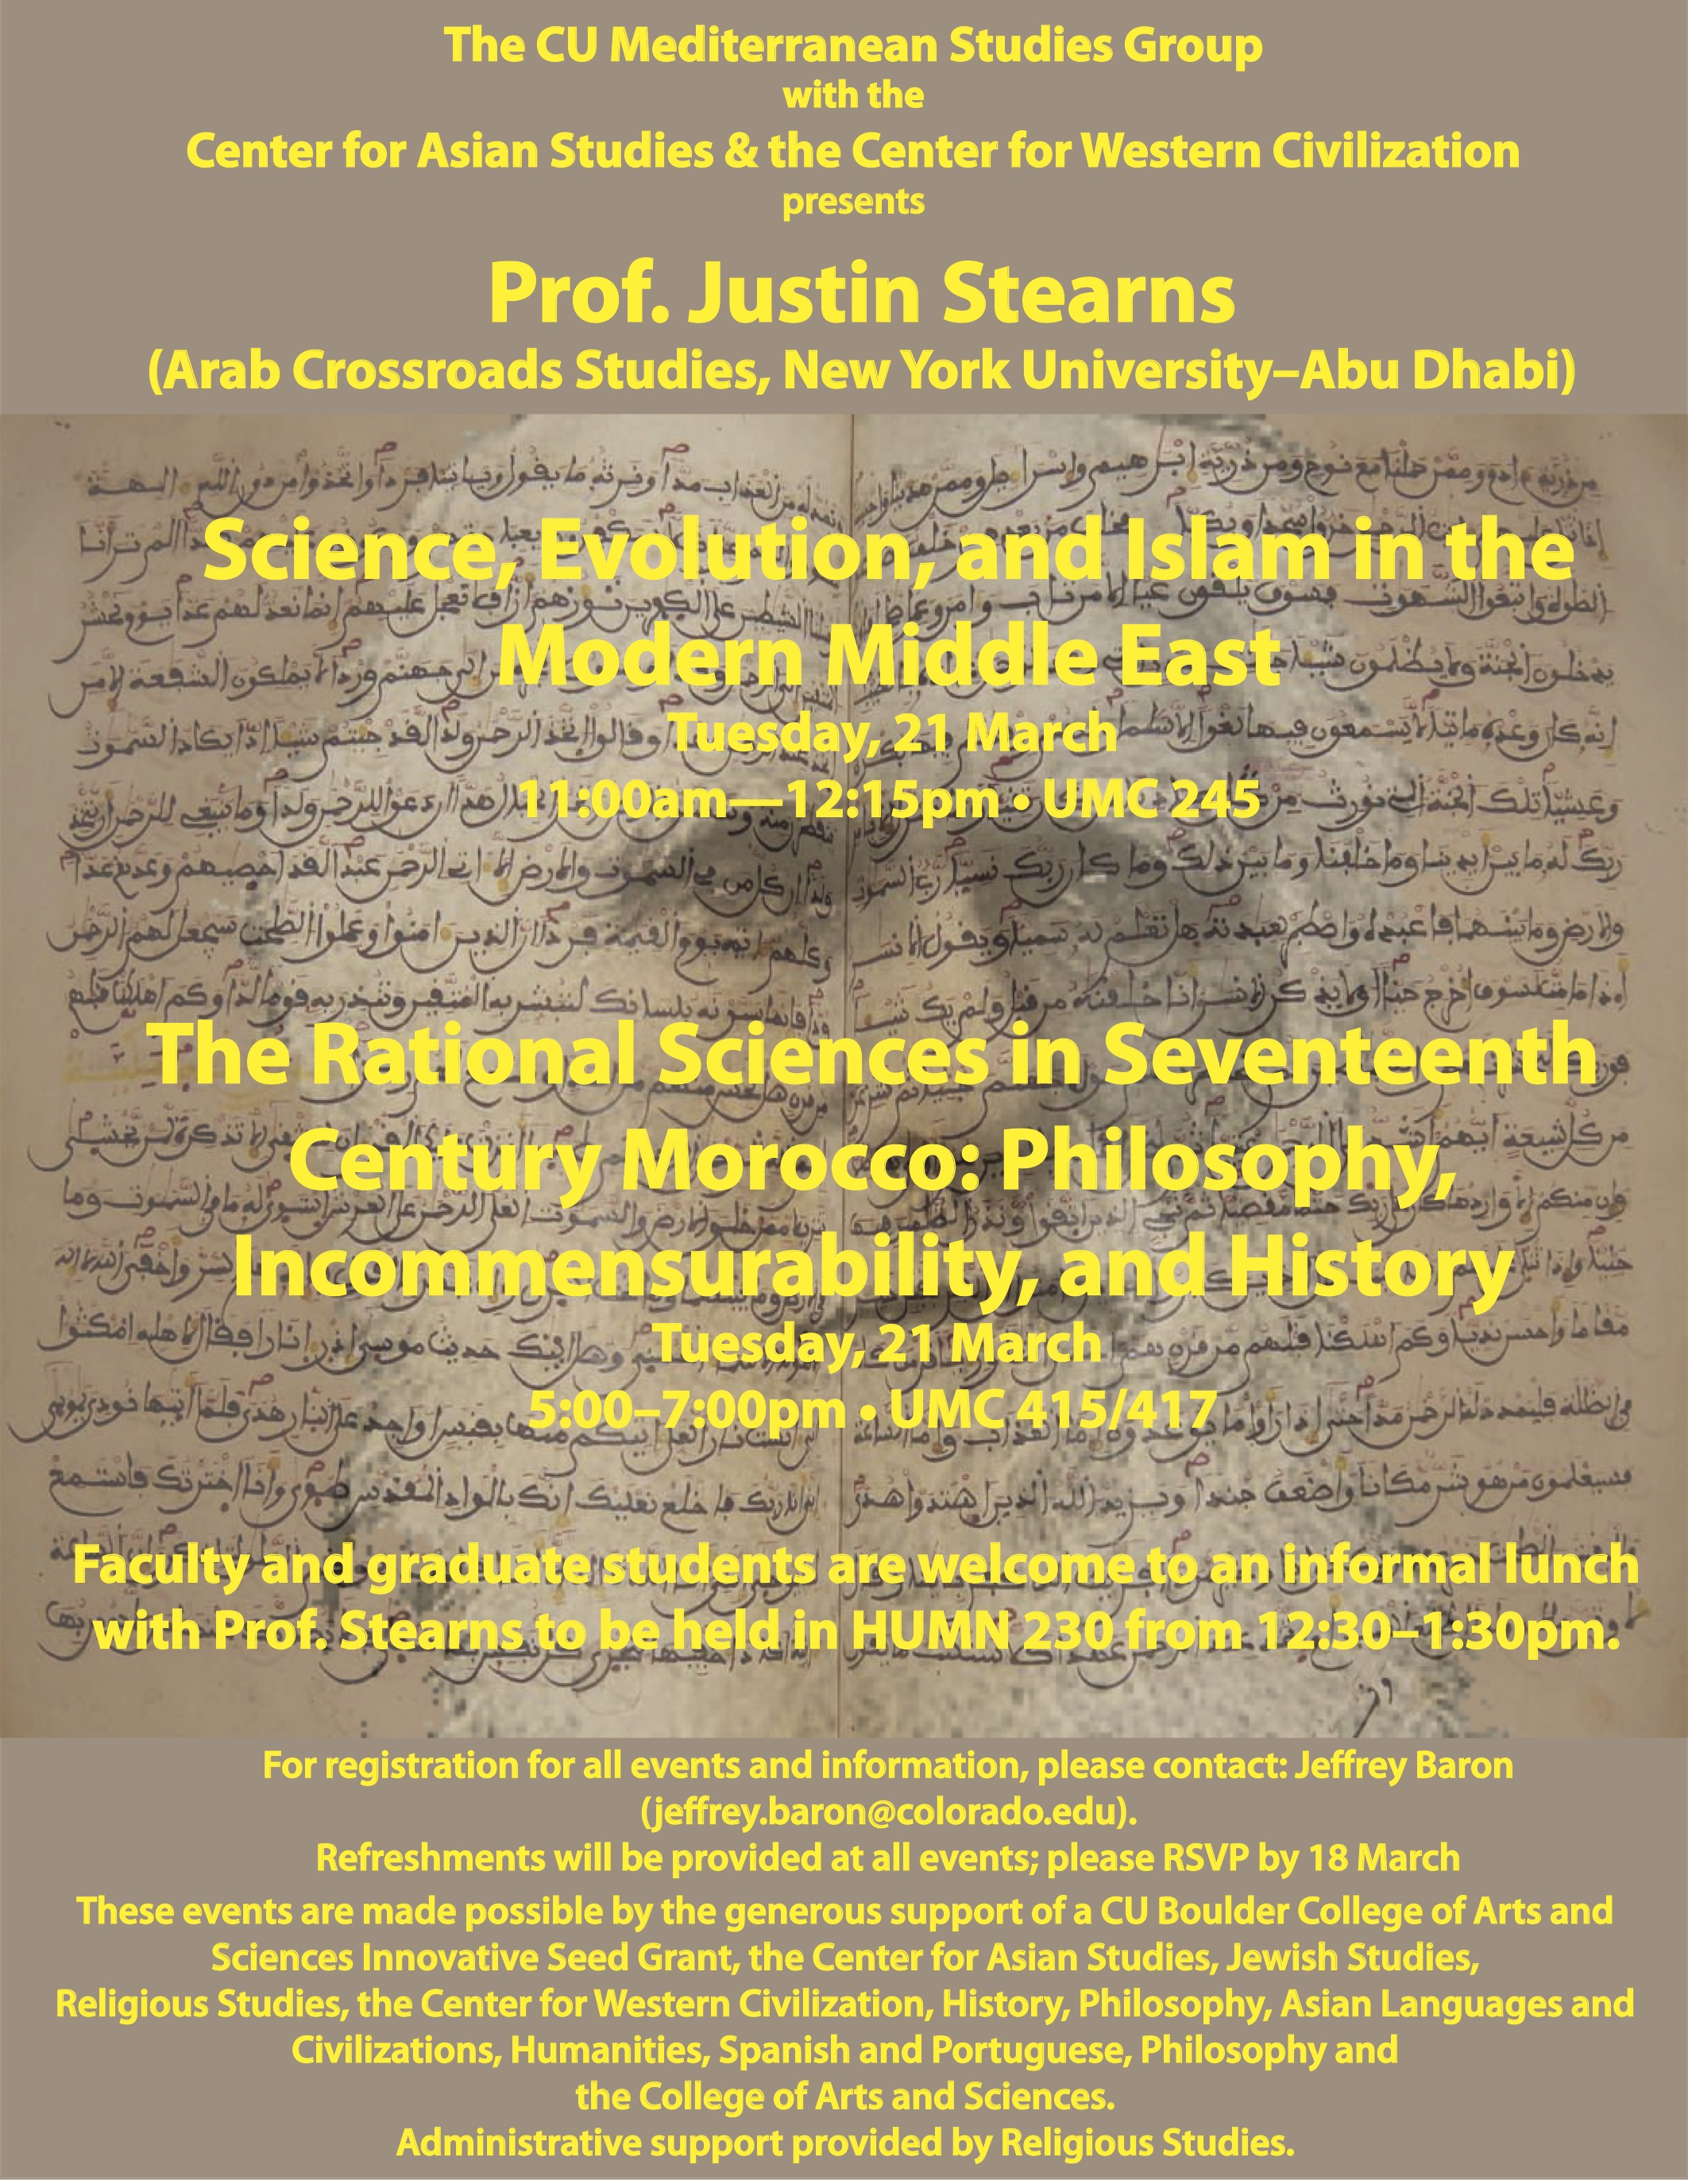 170321 Stearns Islam and Science in Early Modern Morocco and the Modern Middle East.jpg